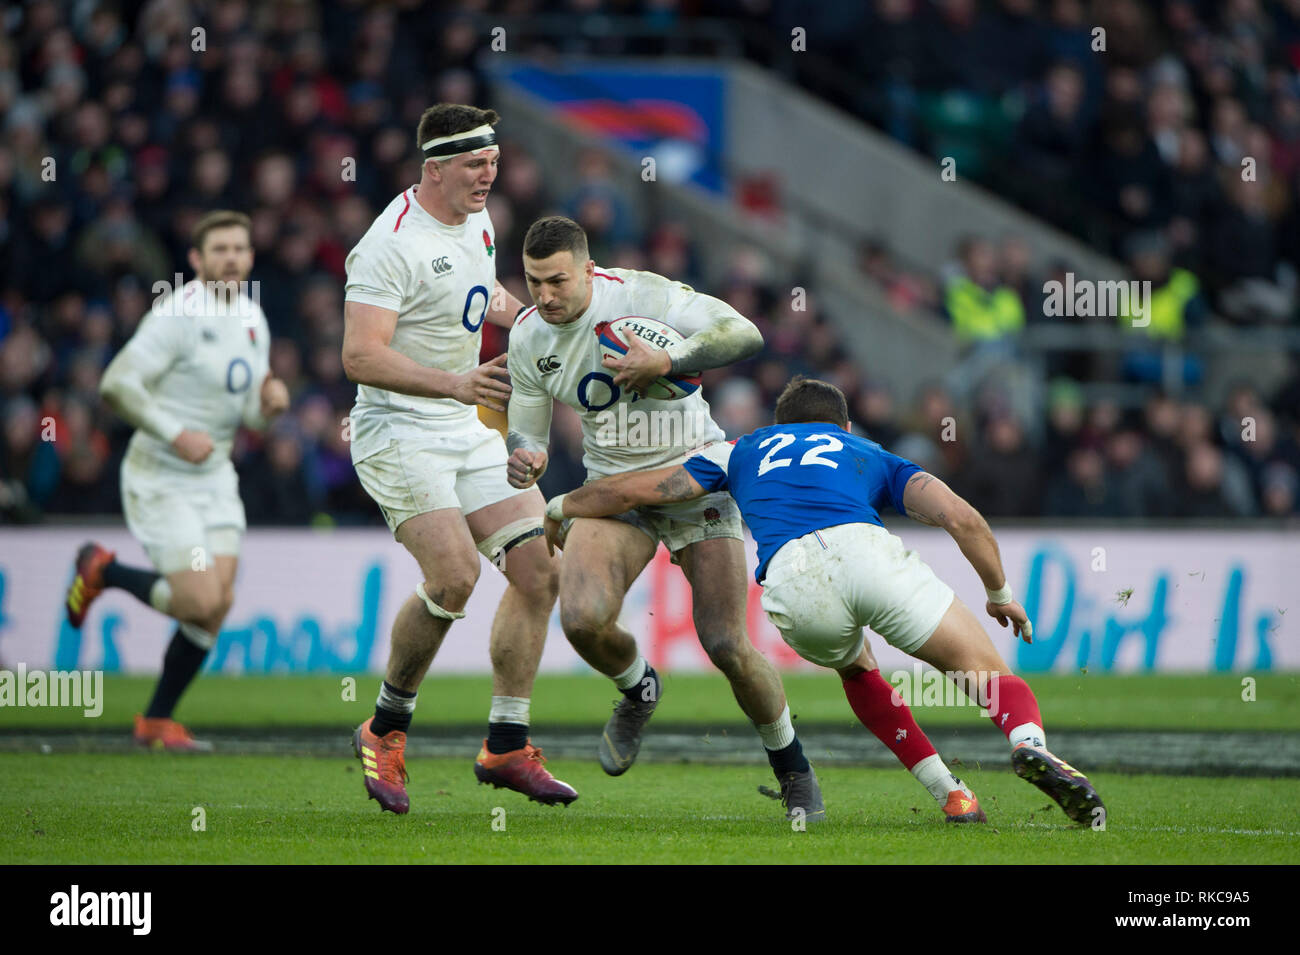 Twickenham, United Kingdom. 7th February, Jonny MAY, breaking through Ramain NTAMACK's tackle, during the England vs France, 2019 Guinness Six Nations Rugby Match   played at  the  RFU Stadium, Twickenham, England,  © PeterSPURRIER: Intersport Images Credit: Peter SPURRIER/Alamy Live News Stock Photo